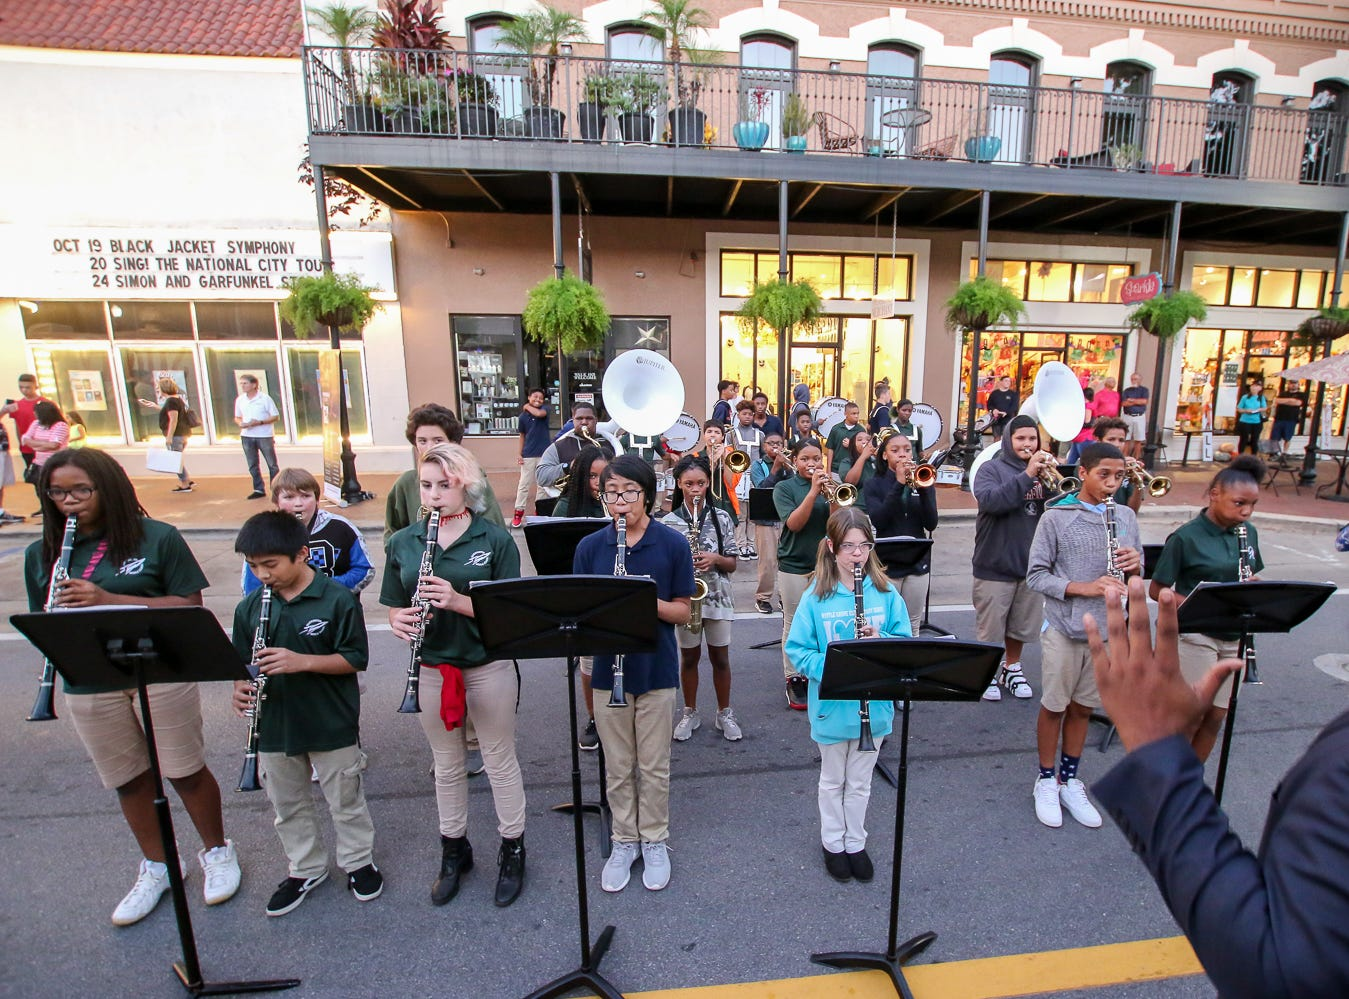 The Warrington Middle School band performs during Gallery Night on Friday, October 19, 2018.